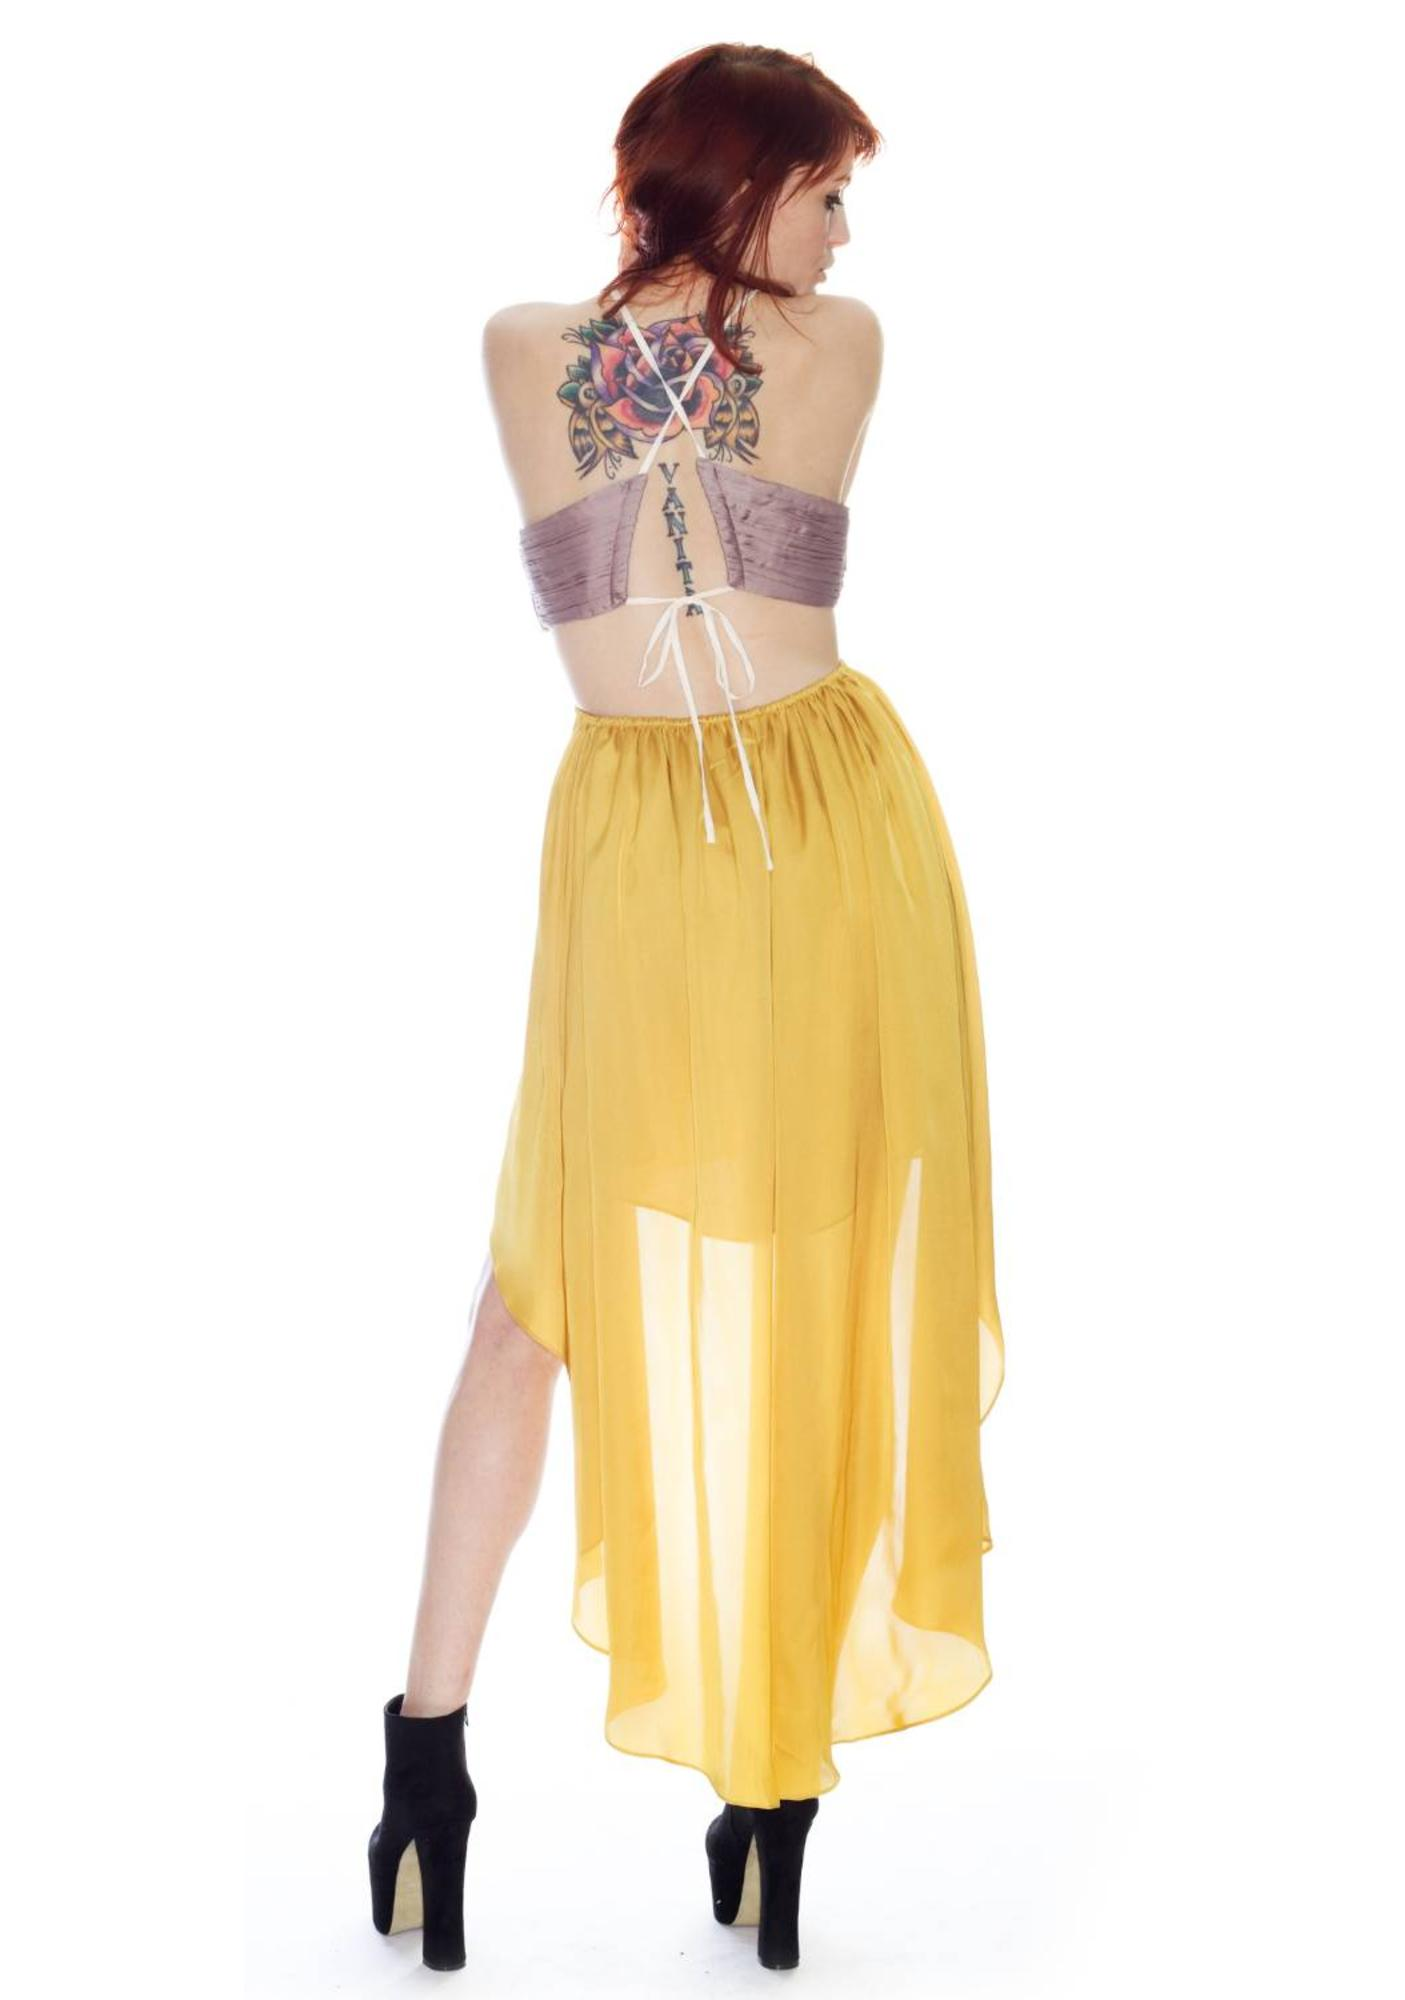 The Shining Star Maxi Dress